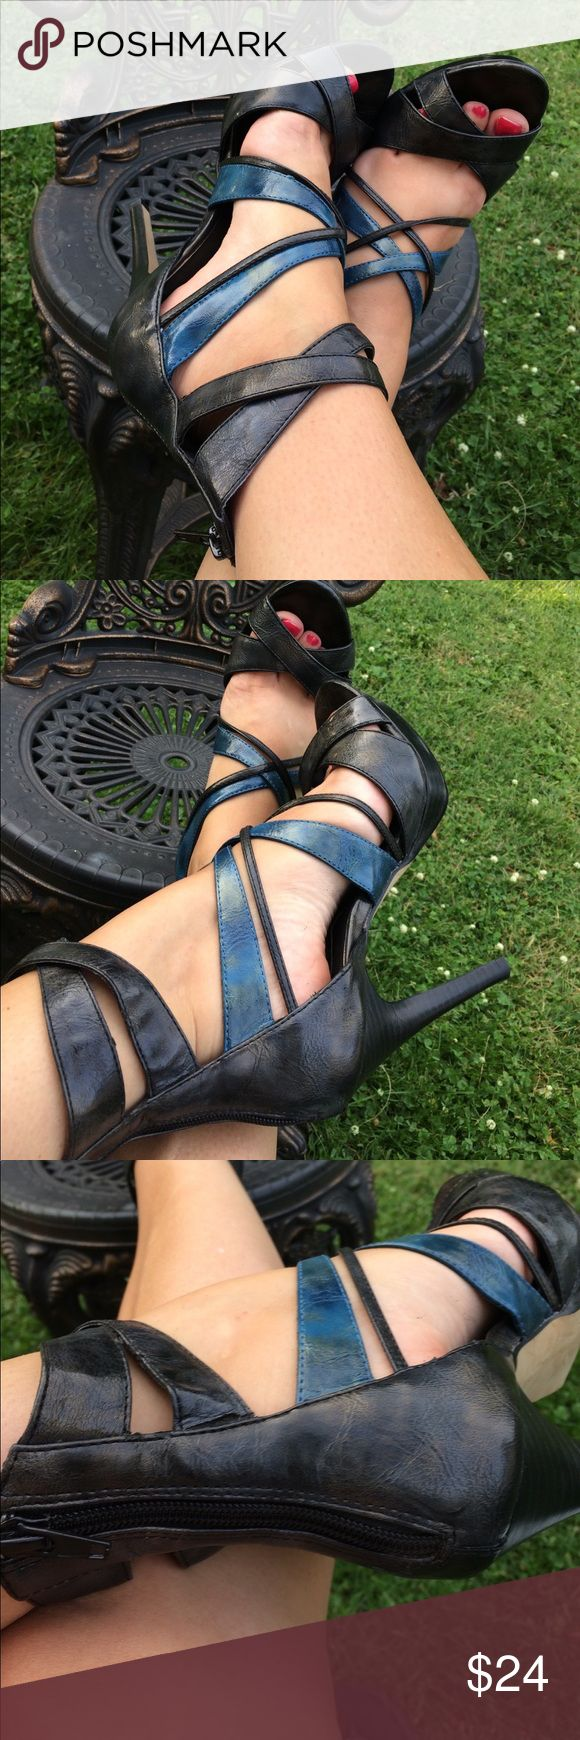 """Steve Madden Luxe Gray and Blue Strappy Heels 8M Steve Madden Luxe Strappy gunmetal gray and blue 5"""" Heels. Zip up the back. Some slight Wear near straps and on bottoms - black marks on bottoms. Otherwise in excellent condition. Size 8M steve madden luxe Shoes Heels"""